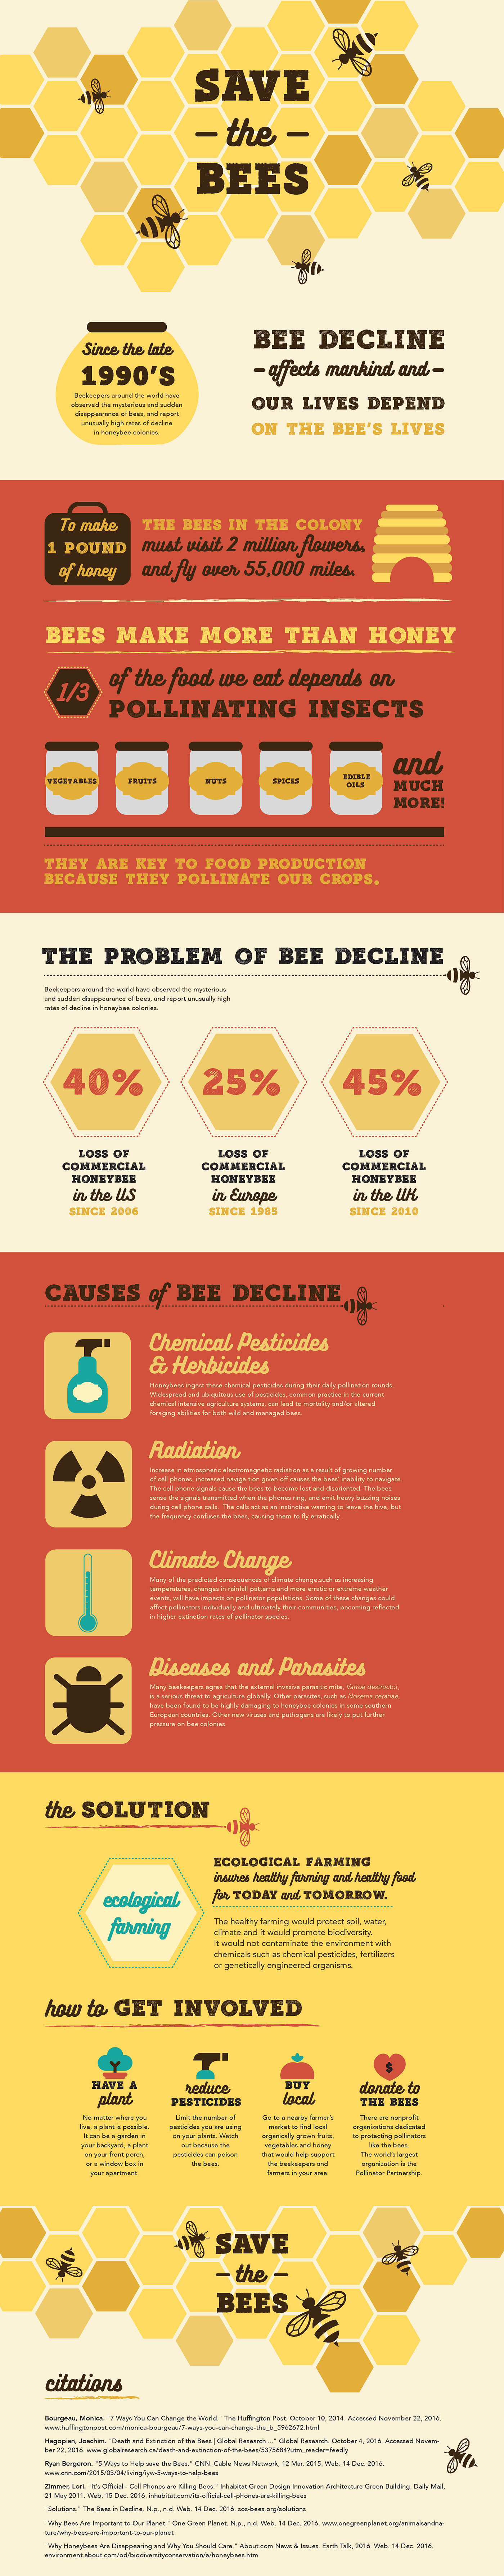 environment honeybees save the bees Go Green bees environmental Nature Extinction Bee Infographic bee extinction